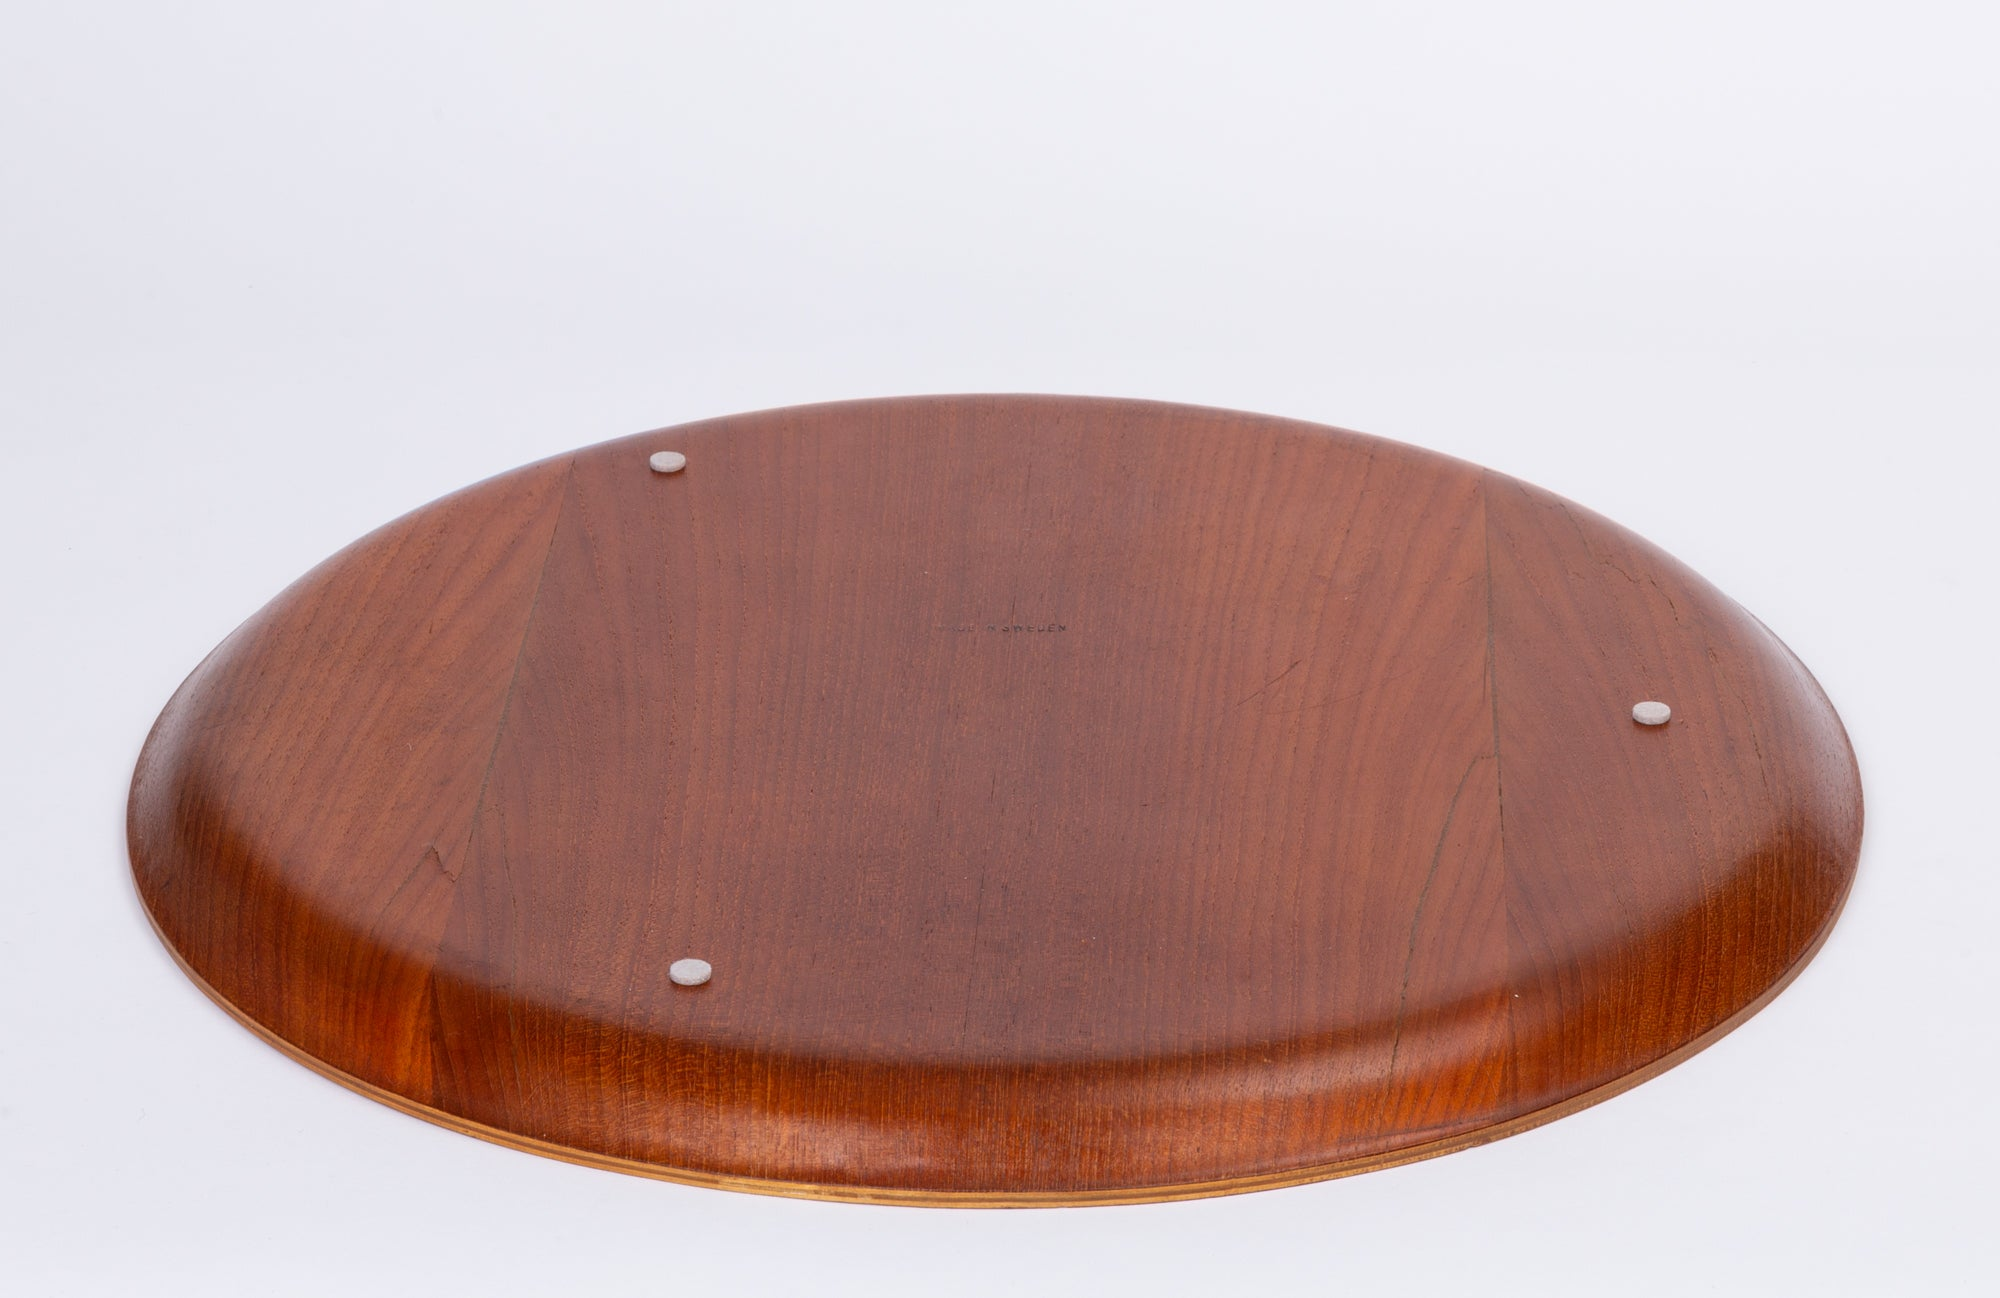 Swedish Round Teak Tray with Curved Edge